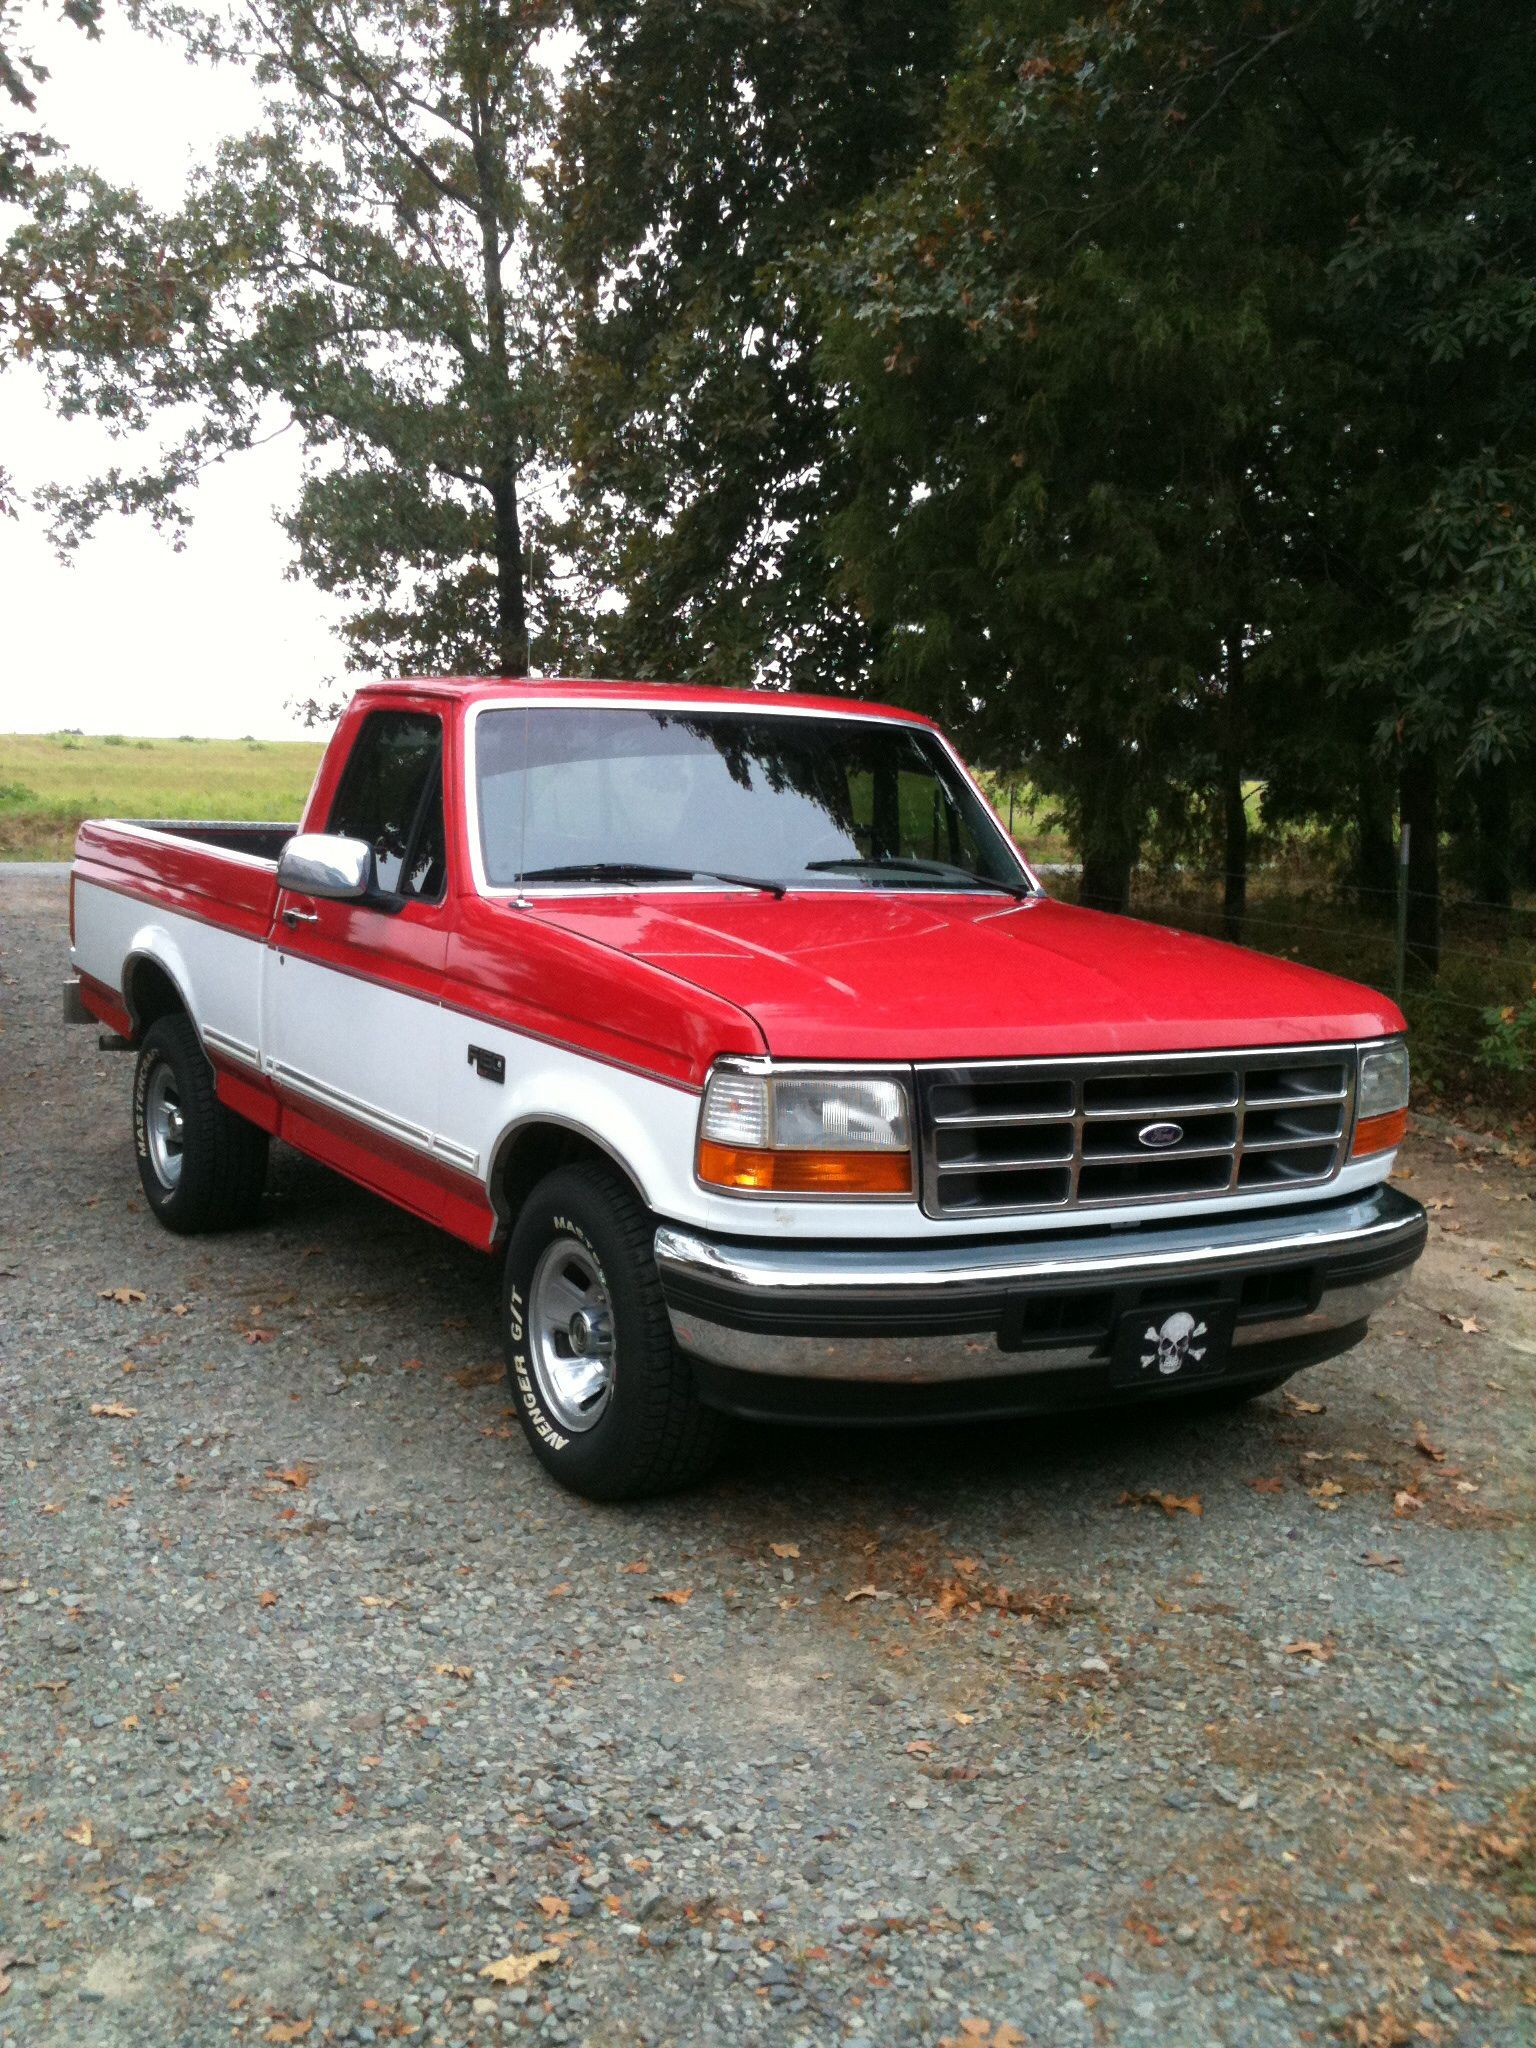 96 Ford F150 My Baby S Ride Pickup Trucks Ford Pickup Trucks Truck Rims